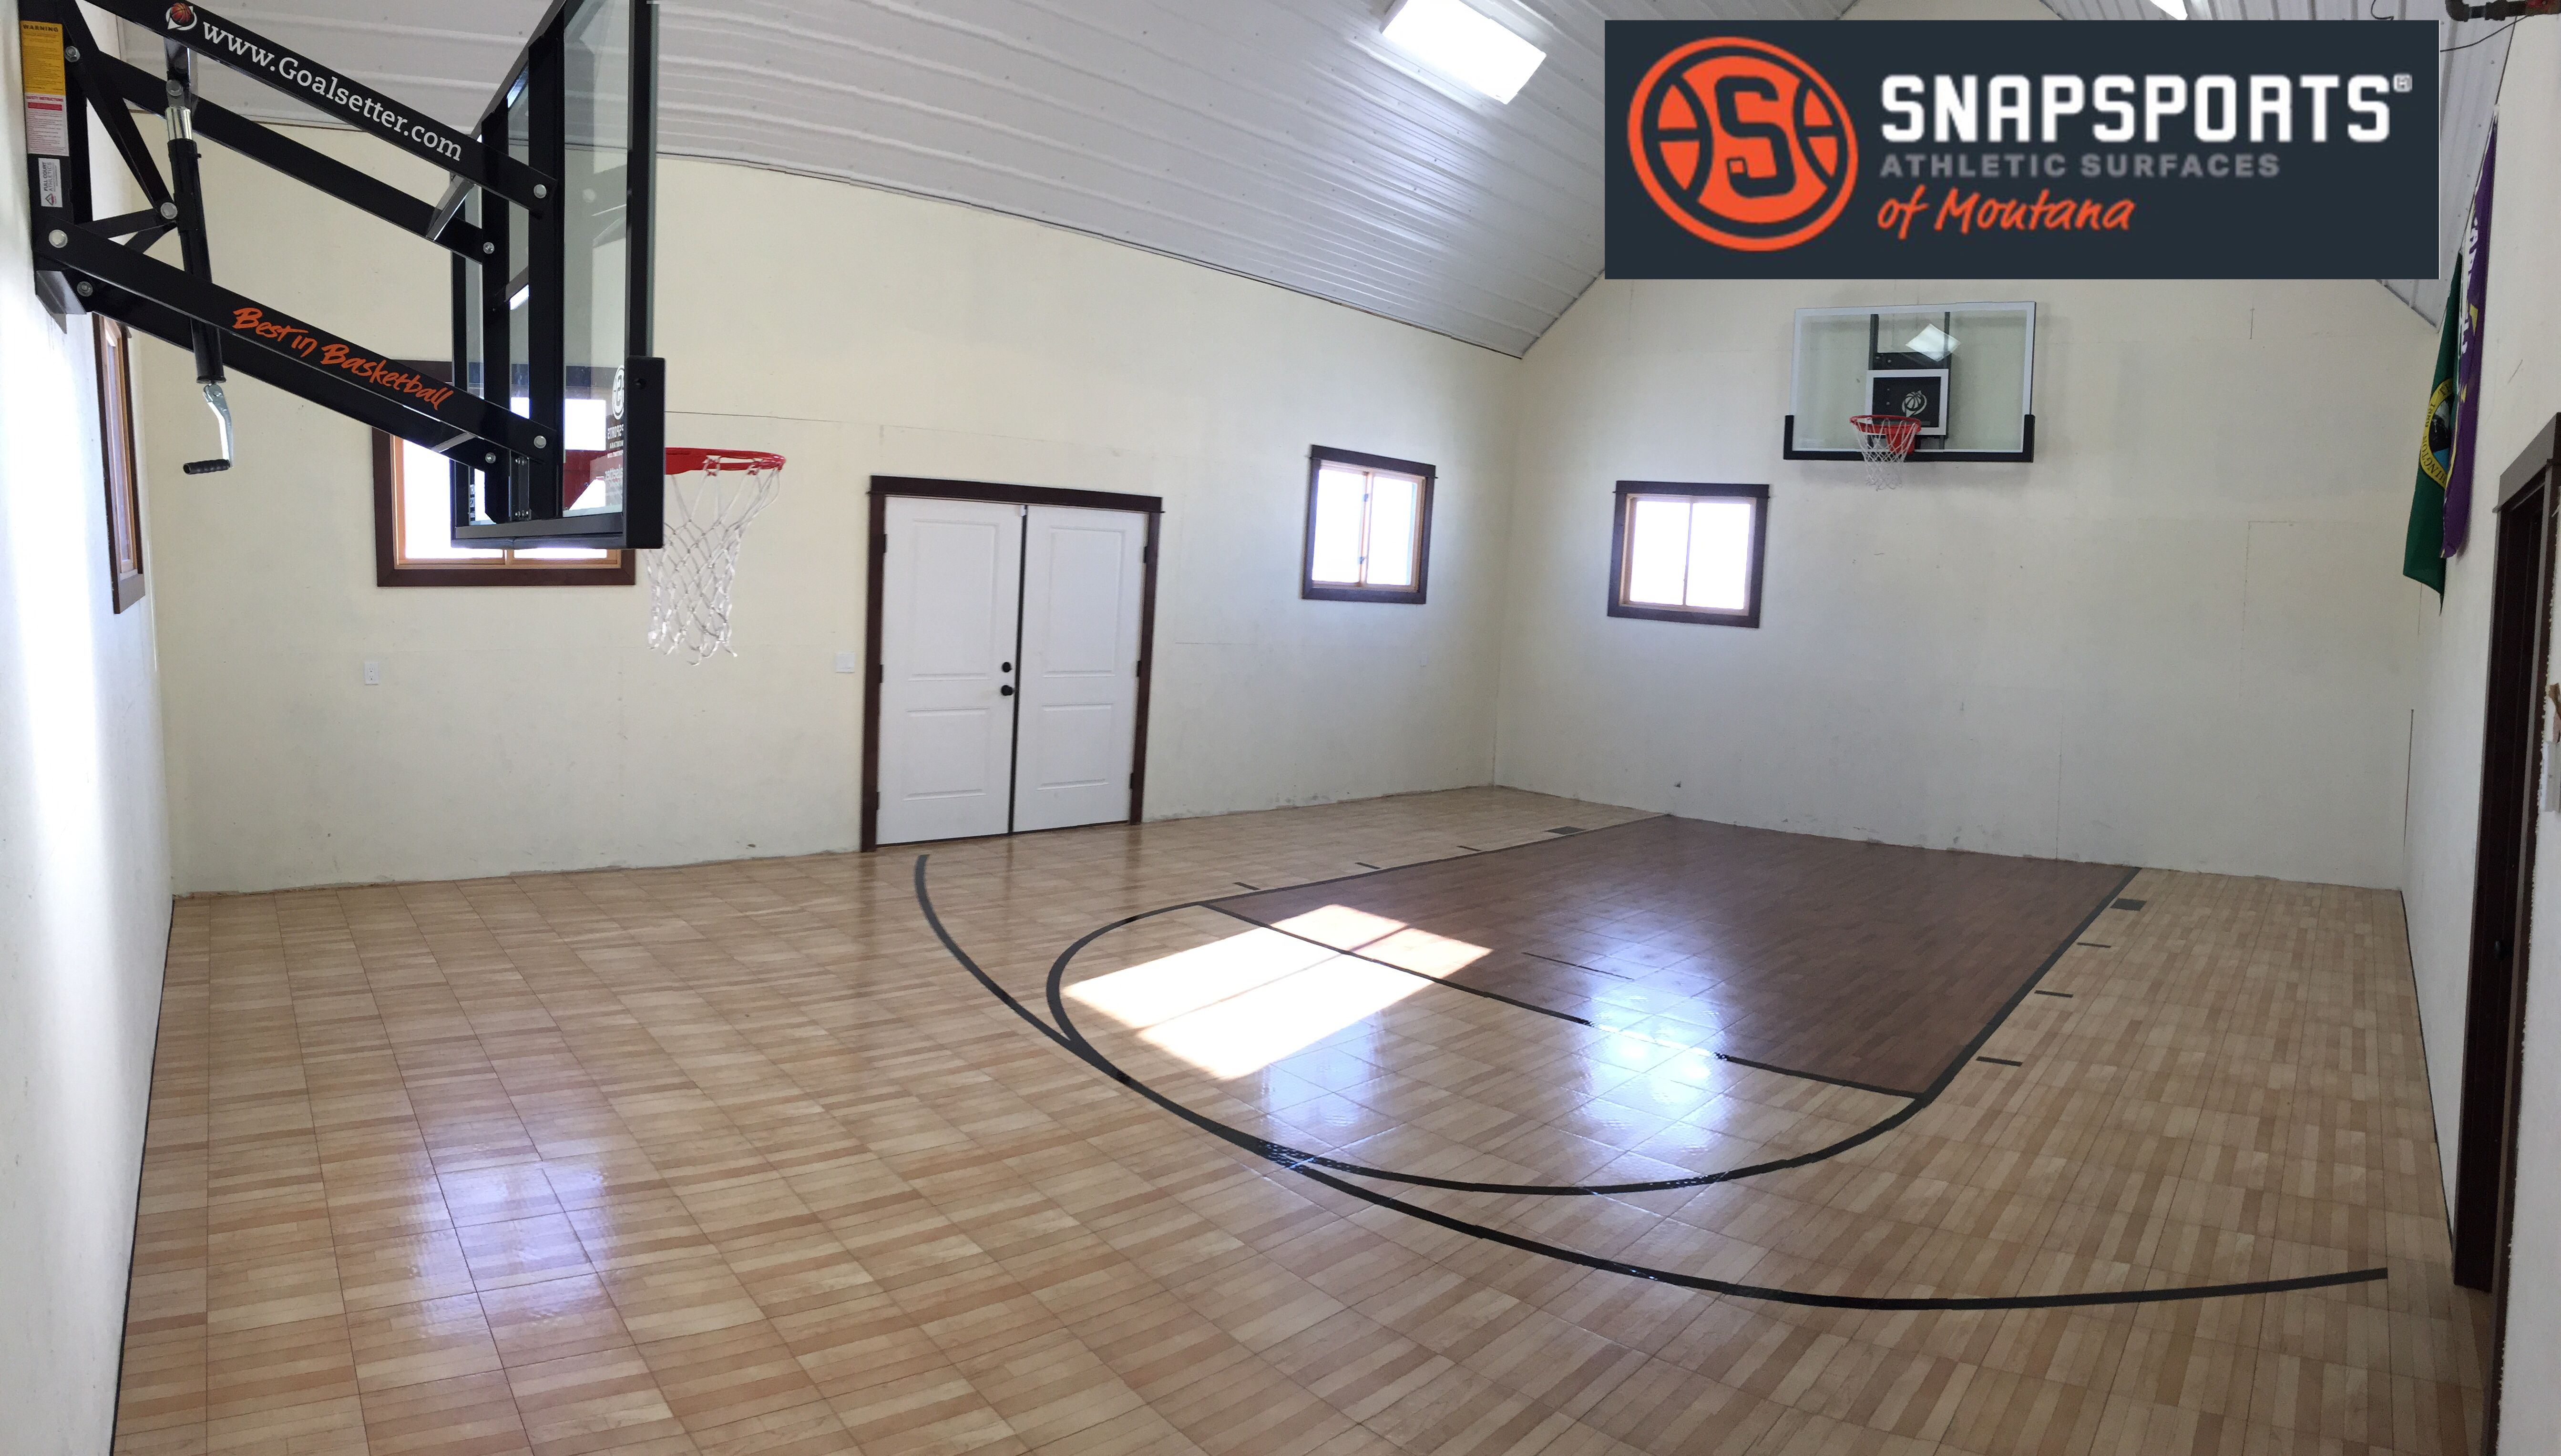 This Outbuilding Was Transformed Into An Amazing Home Gym With Snapsports Athletic Flooring And Hoops At Home Gym Backyard Games Home